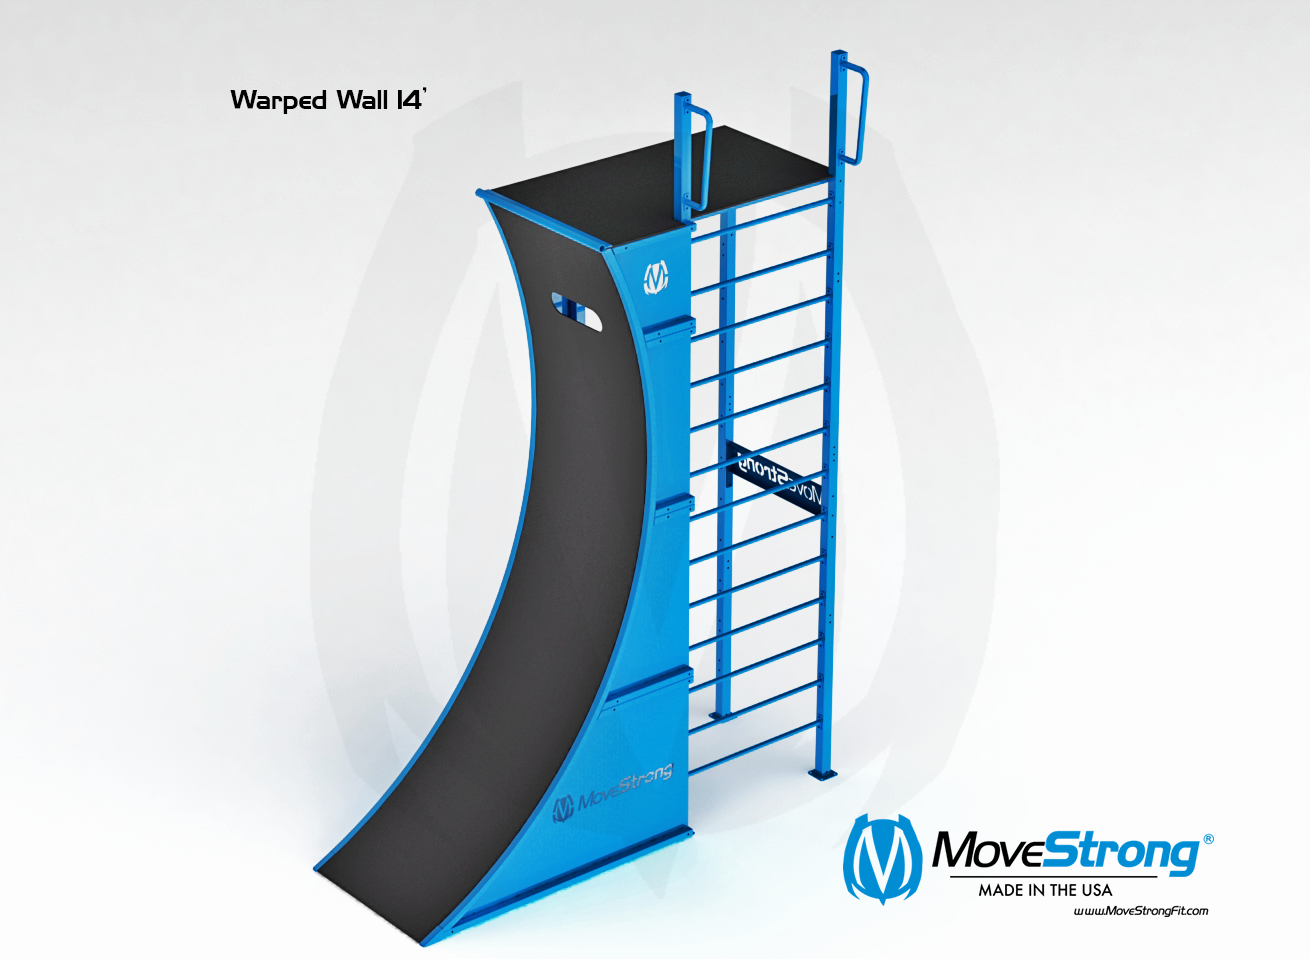 MoveStrong Warped Wall